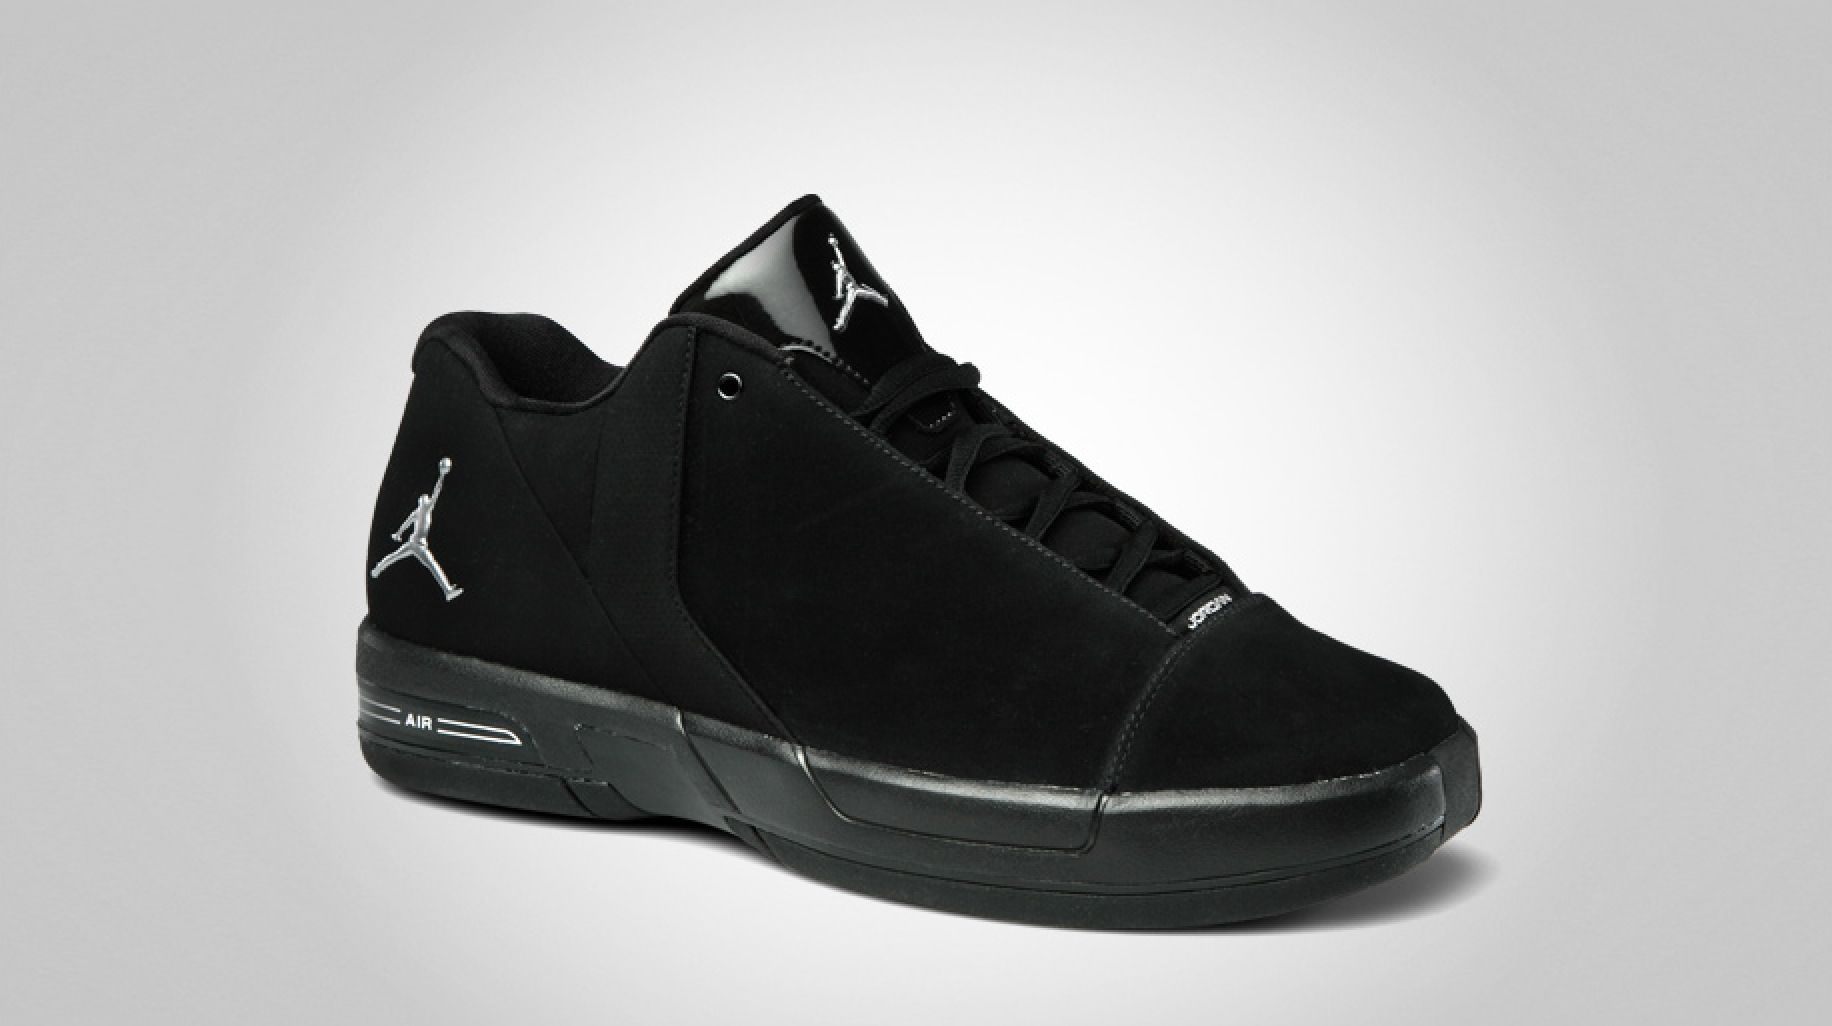 save off 05f32 37aac Jordan TE 3 Low... Another angle. | Jordan's for all mankind ...